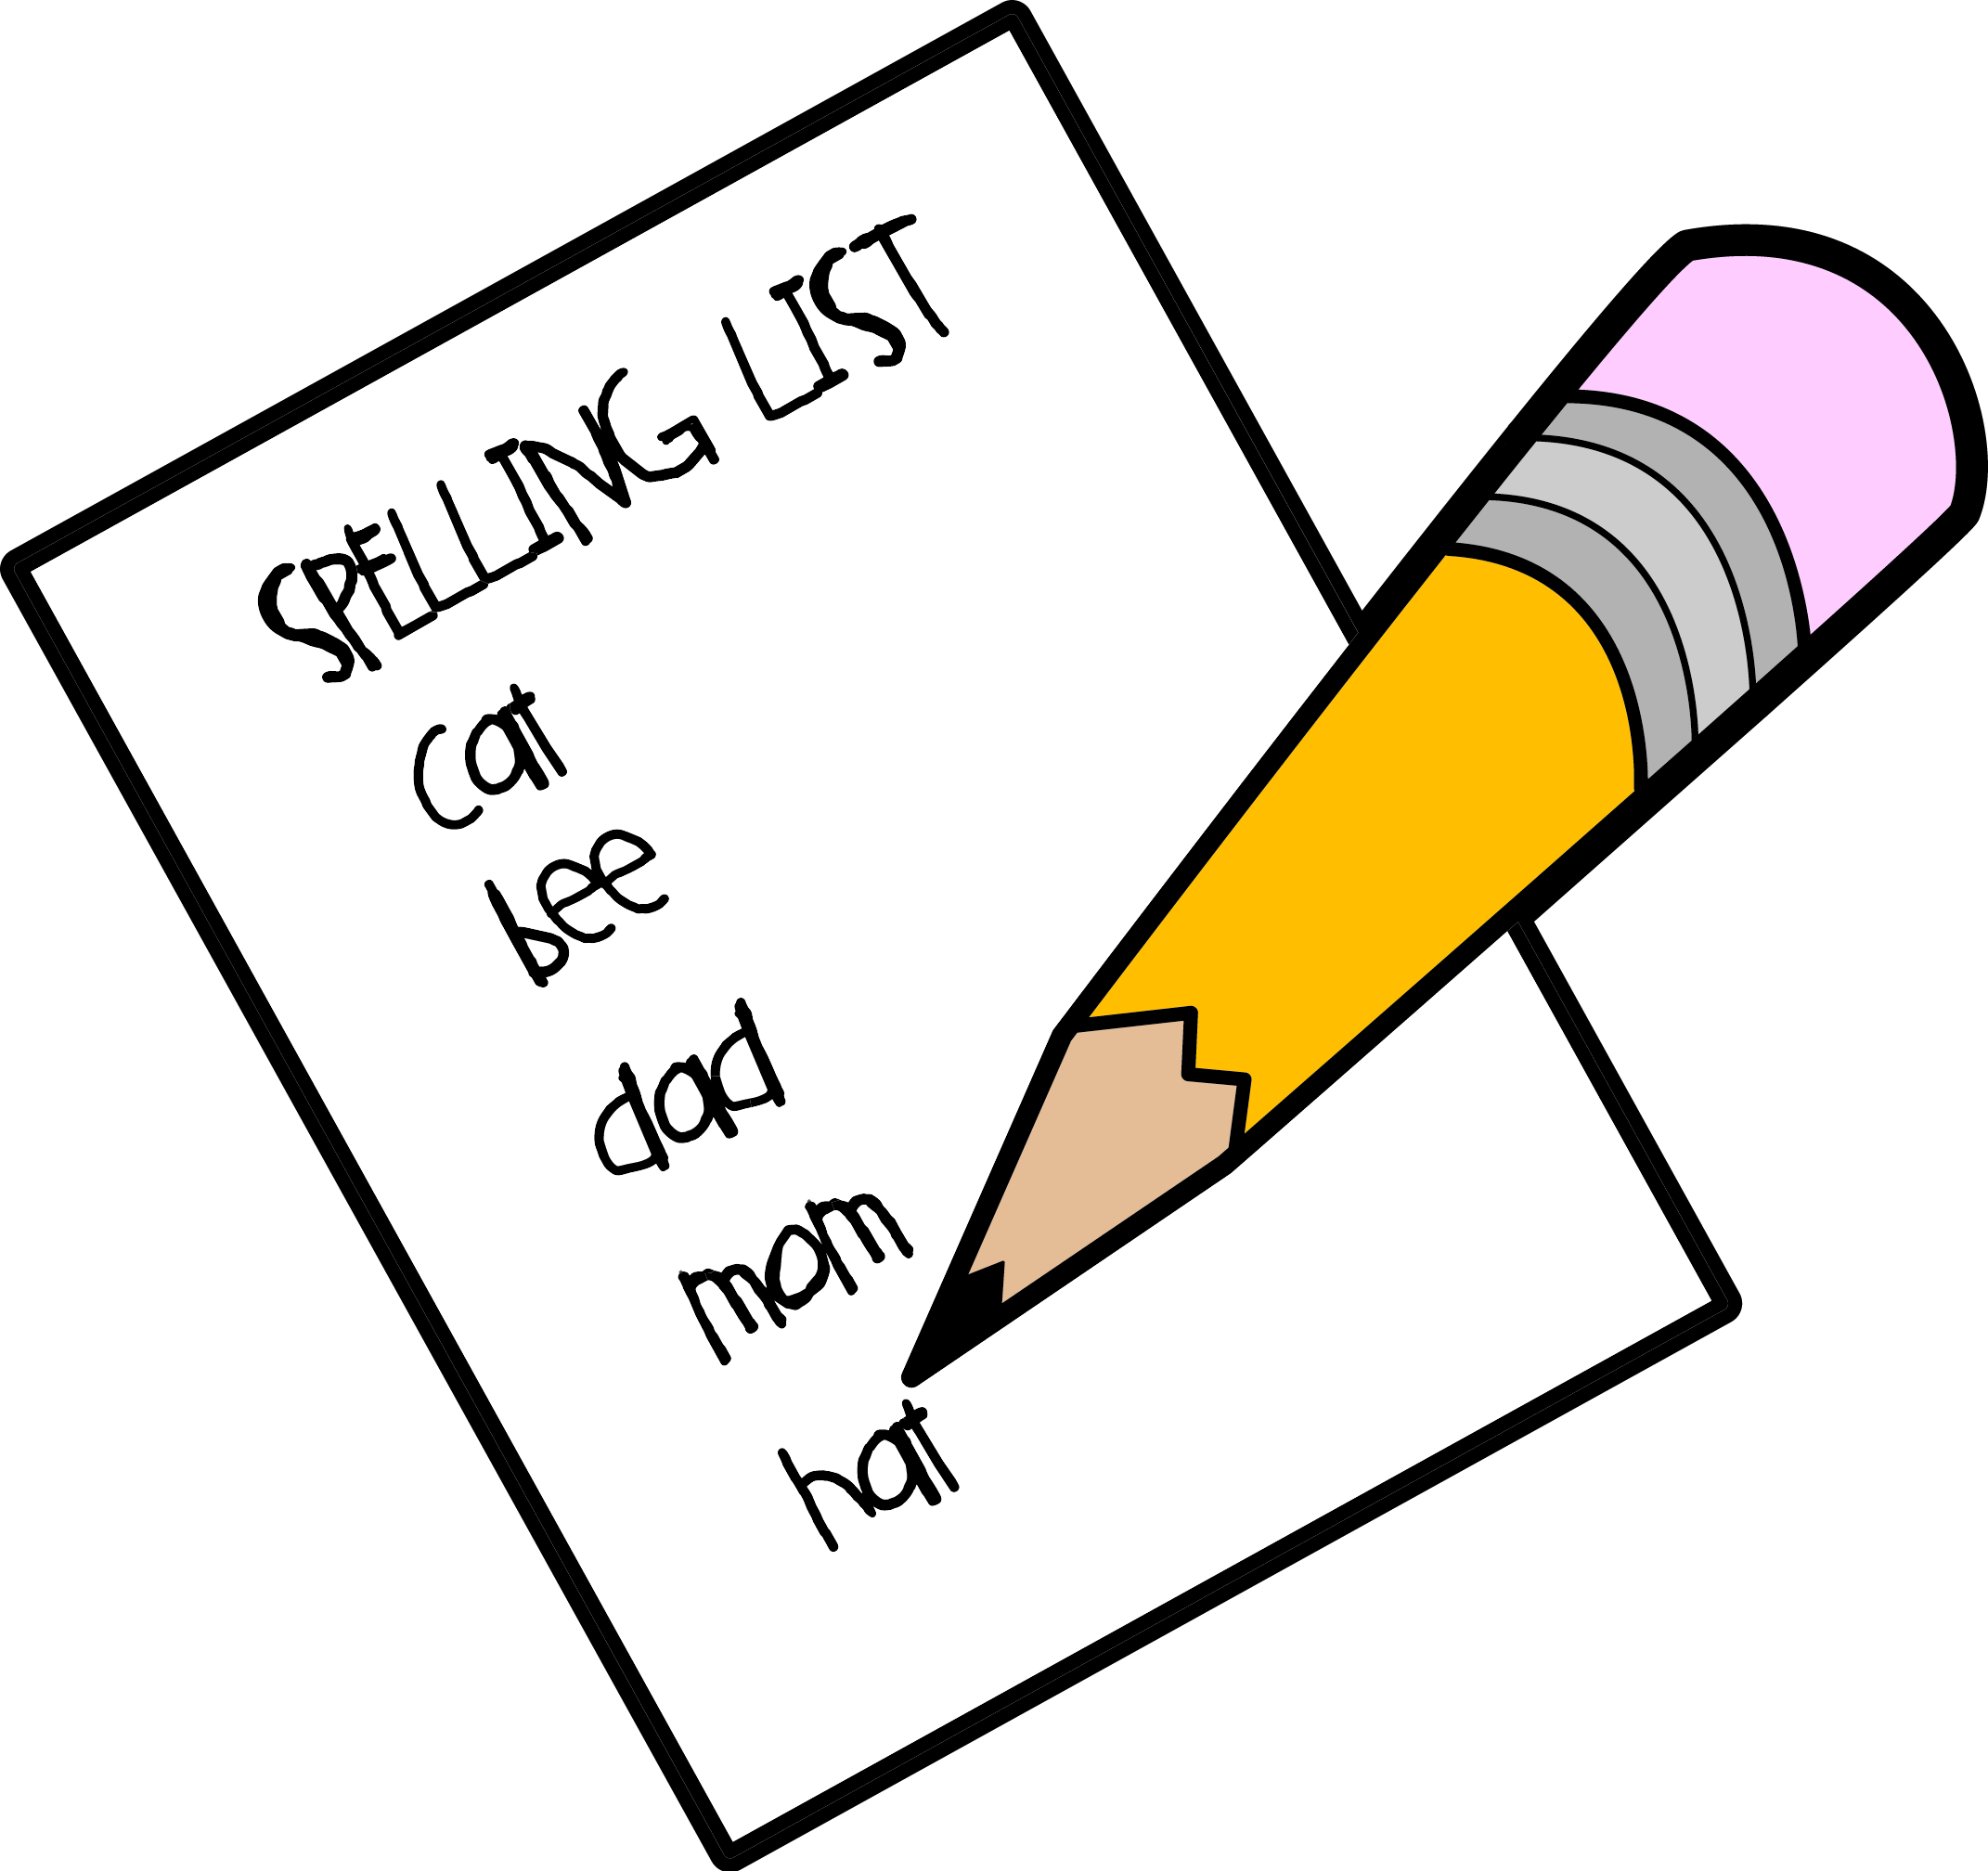 This is best list. Spelling clipart png royalty free